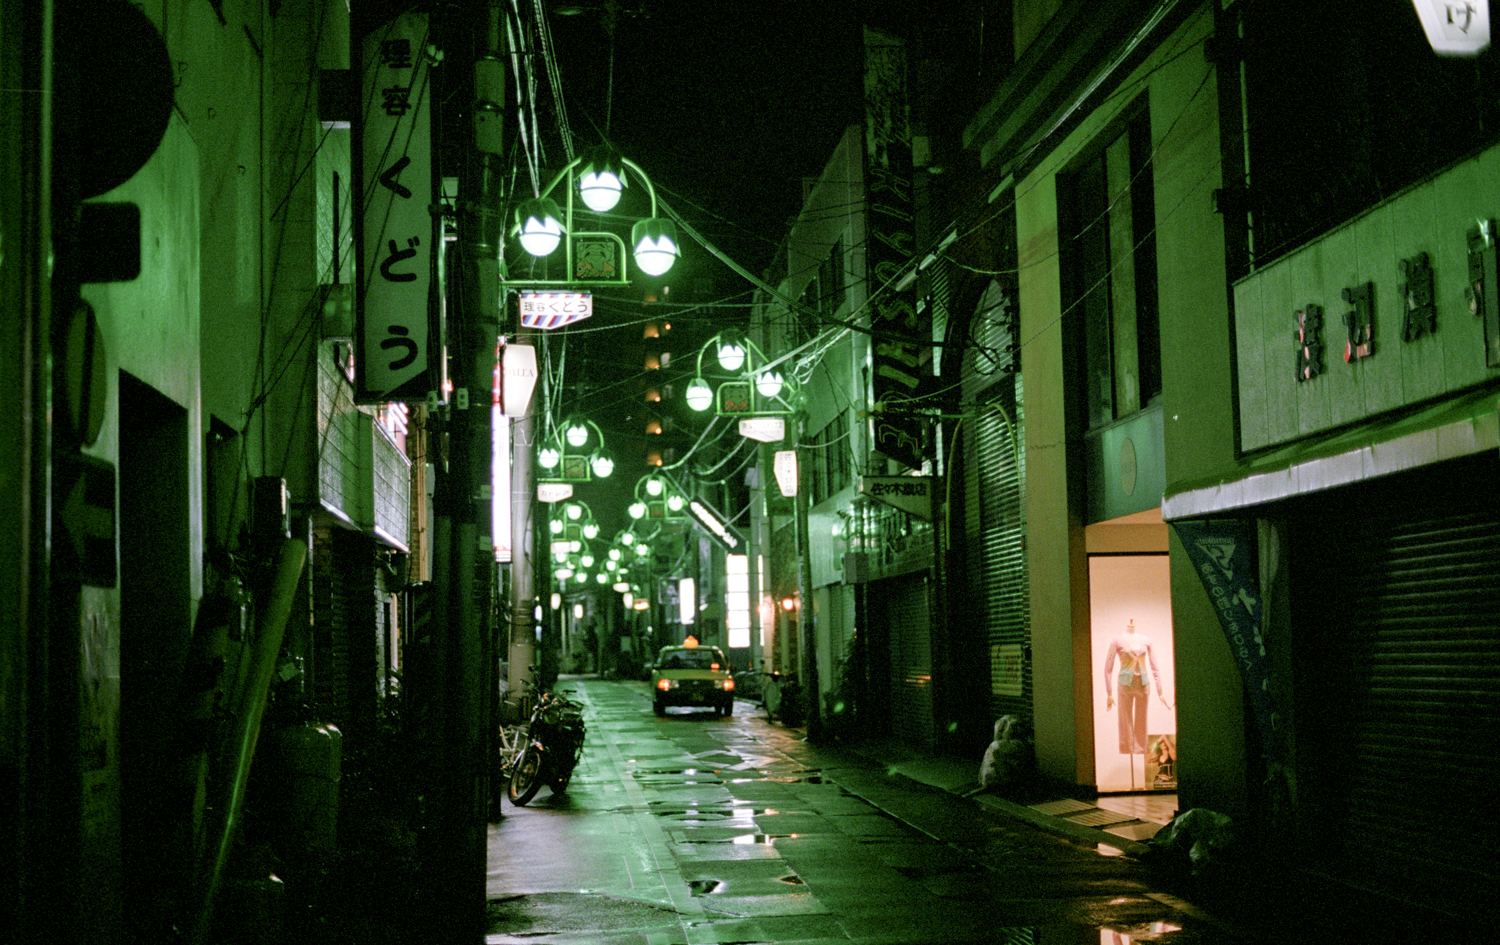 street-night-green-llight-nara-japan.jpg